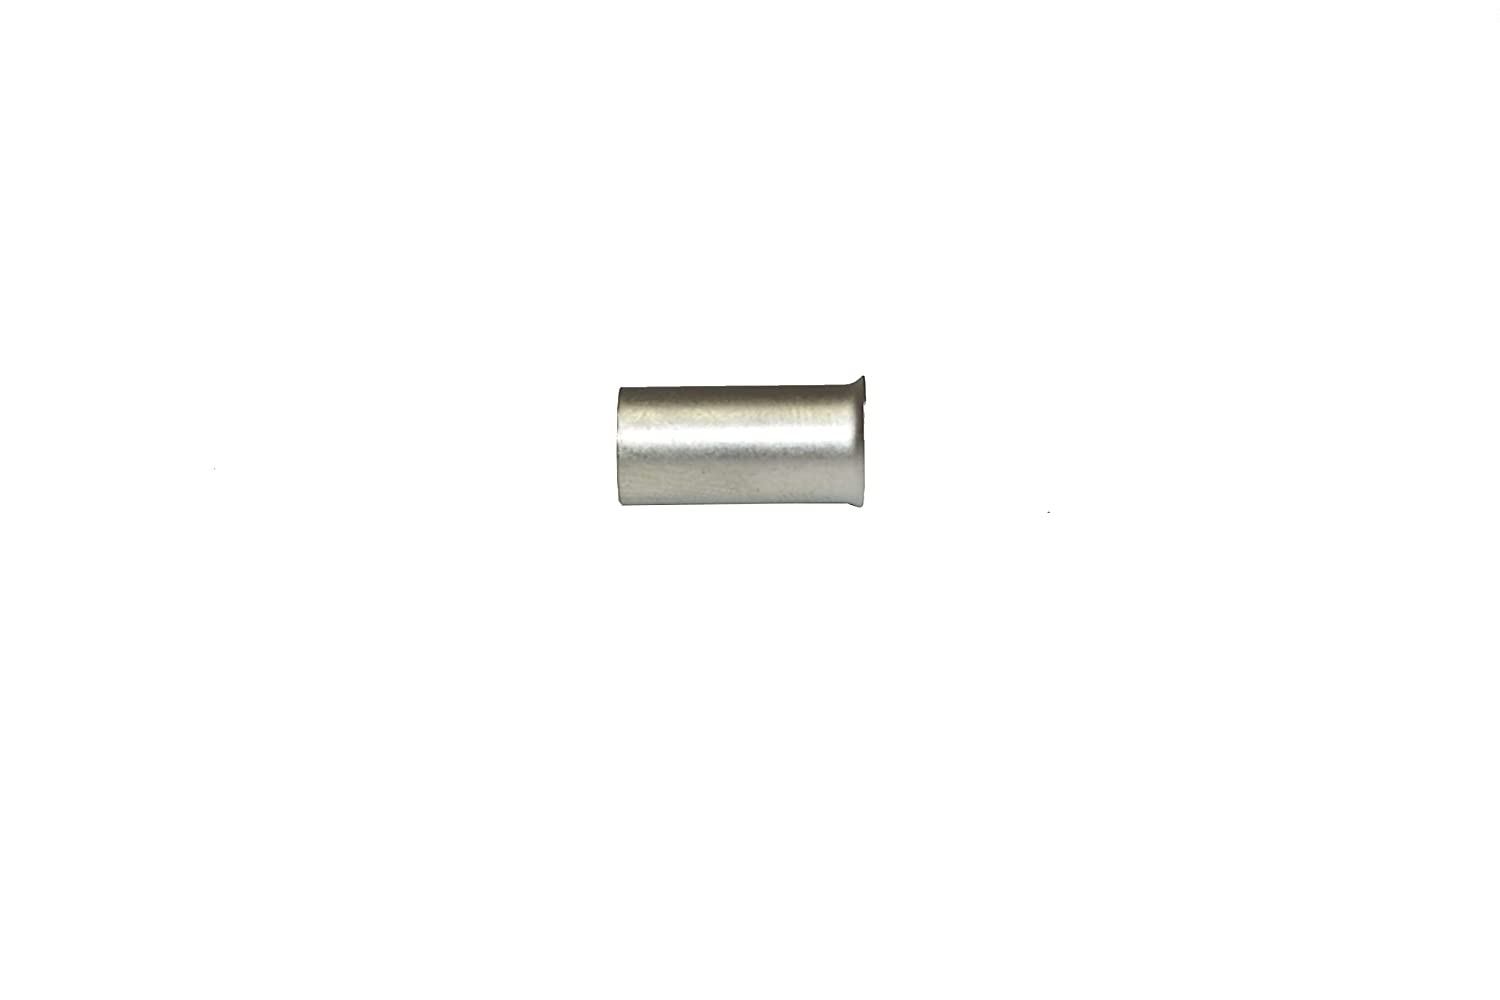 Pack of 50 0.59 Pin Lg. A-Team Performance 4 Ga Non-Insulated Ferrules Tin Plated Copper Tuber